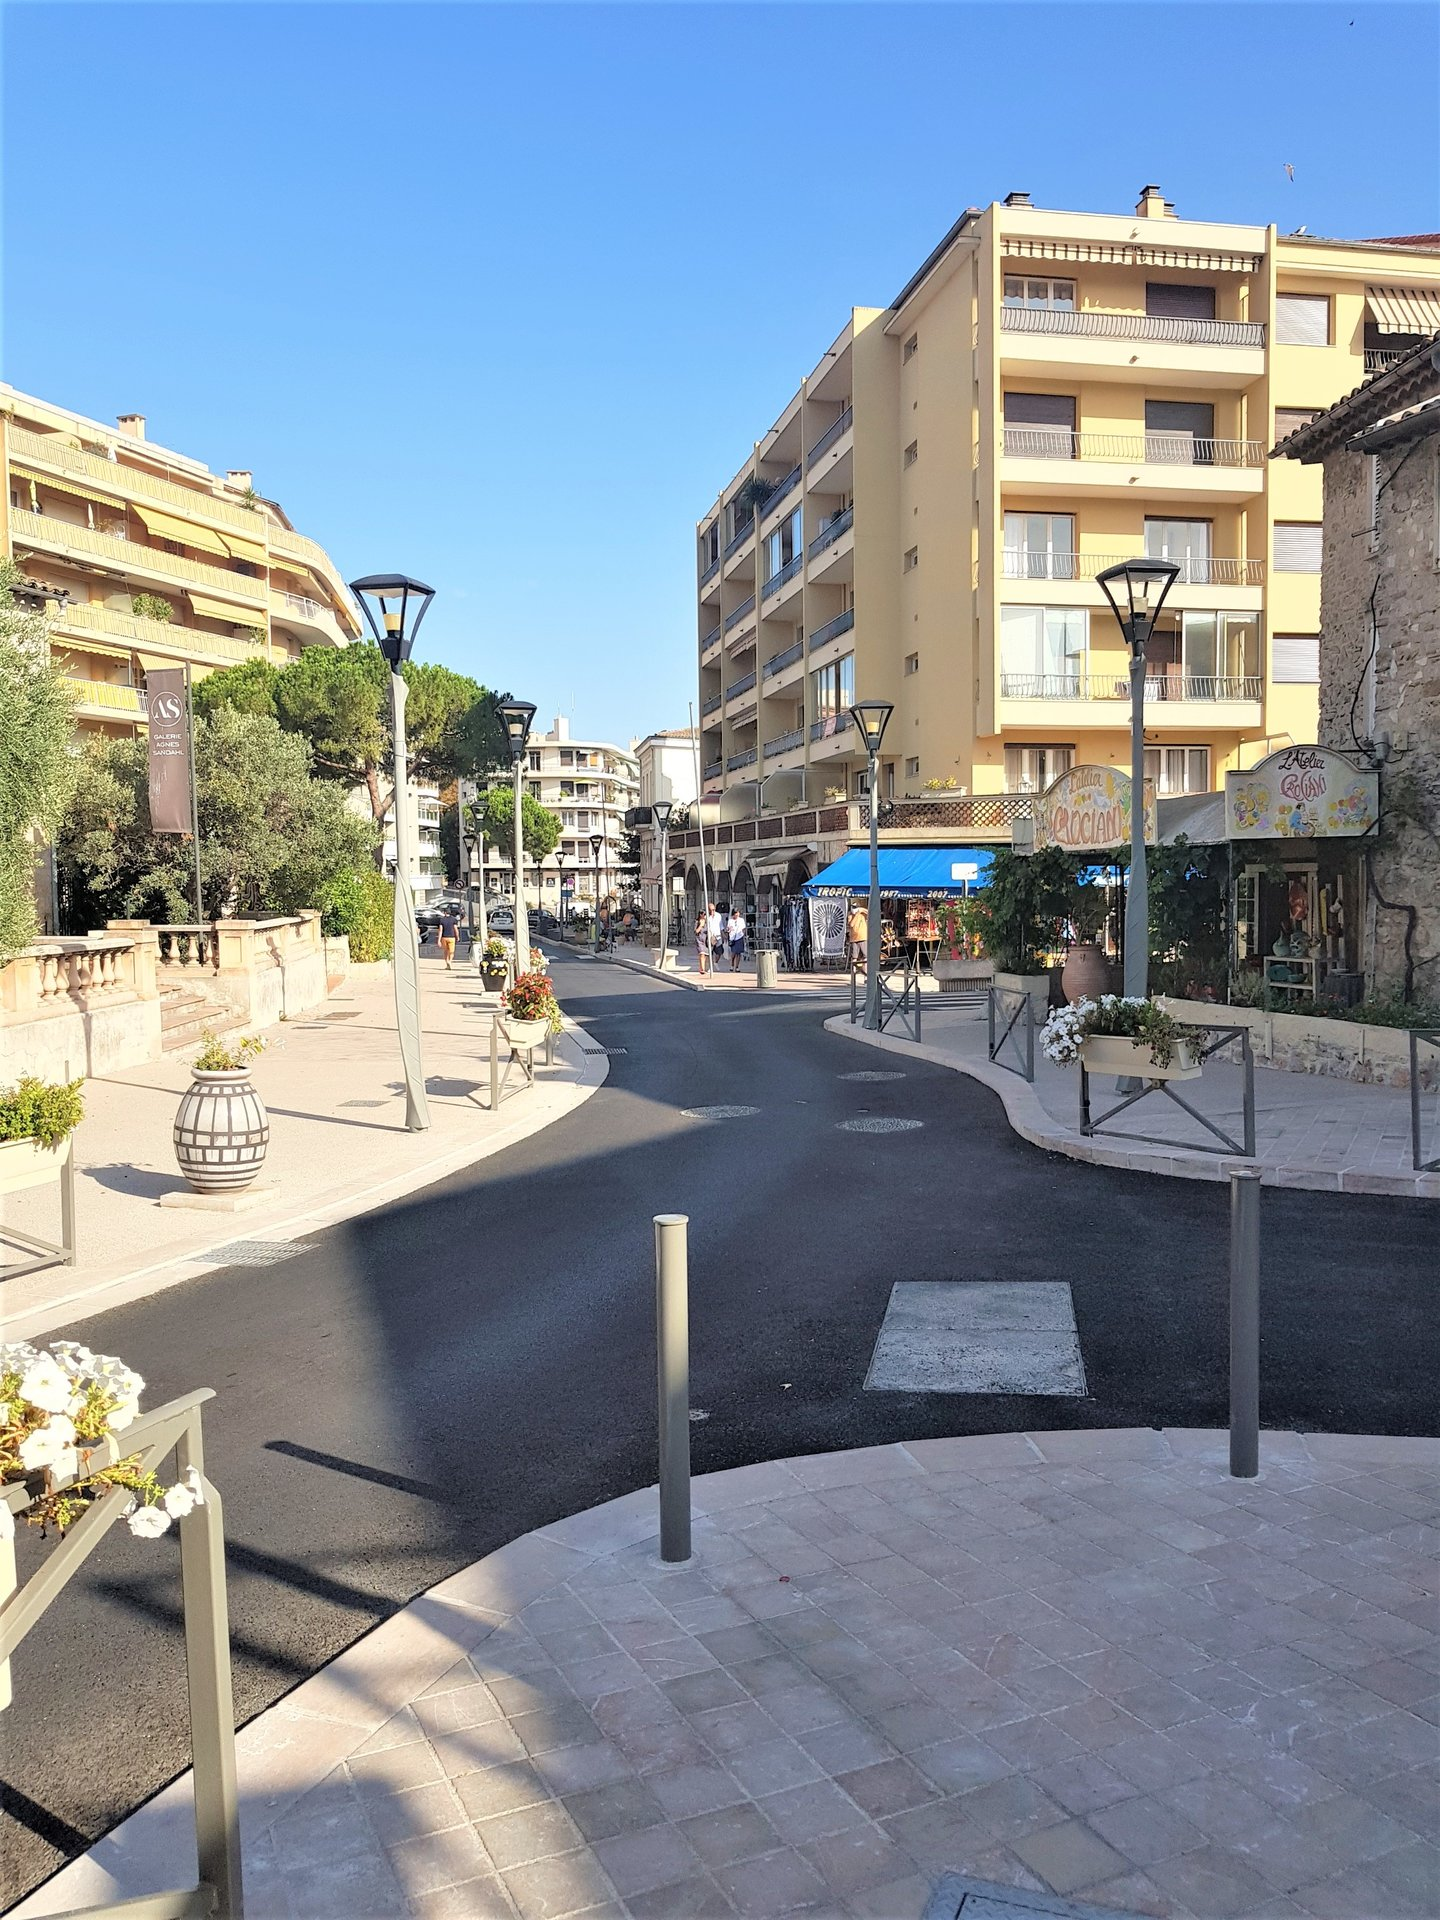 Business of 83 m2 for sale in Vallauris, on the Côte d'Azur